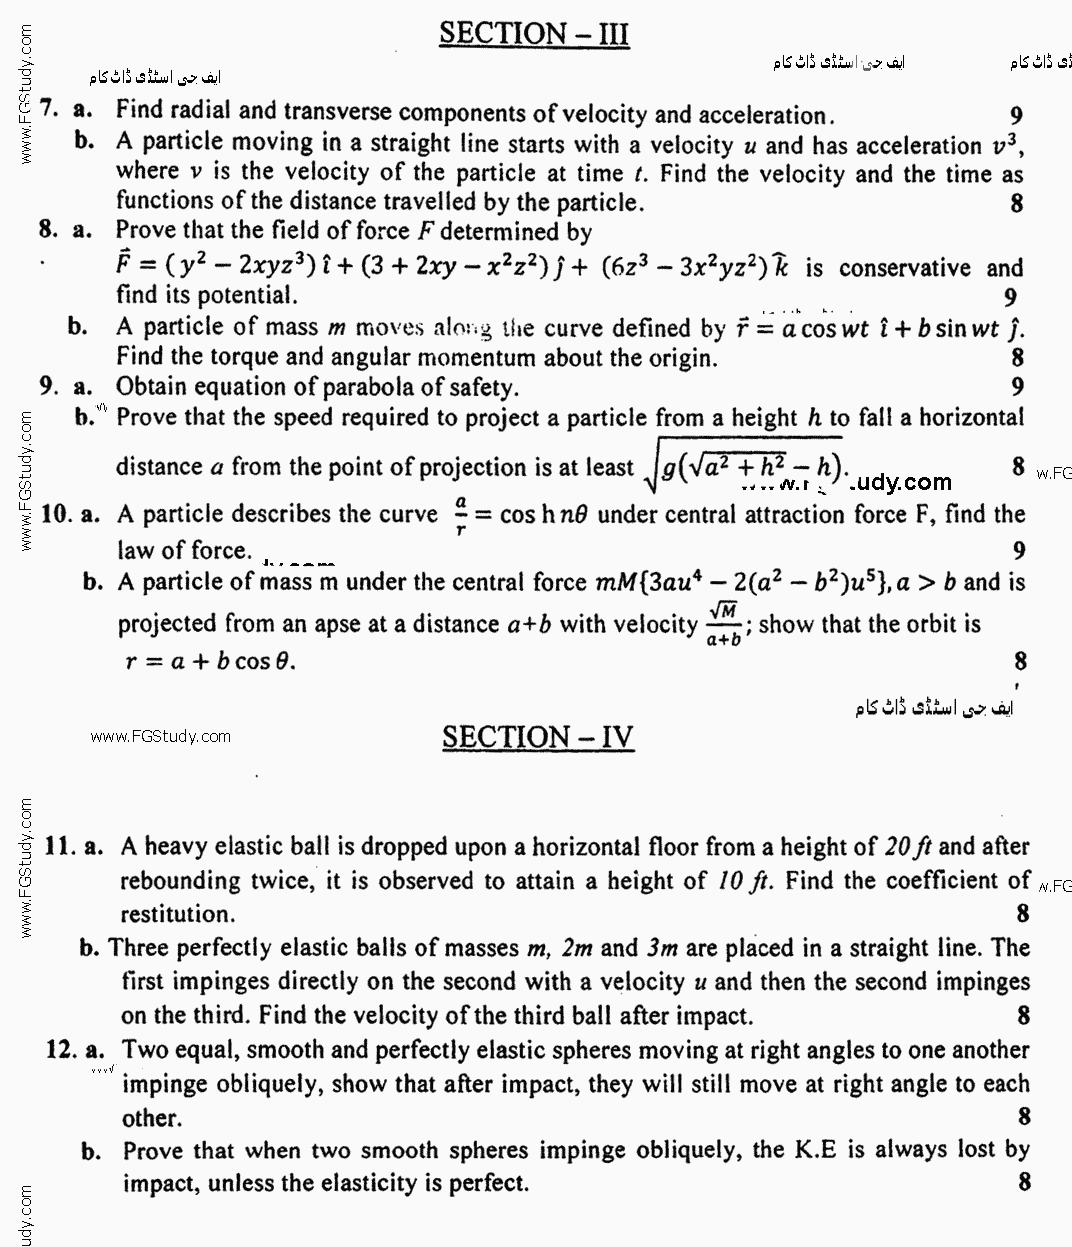 Mathematics General Calculus Differential And Integral Calculus BA Part 1 Past Papers 2018 images 2